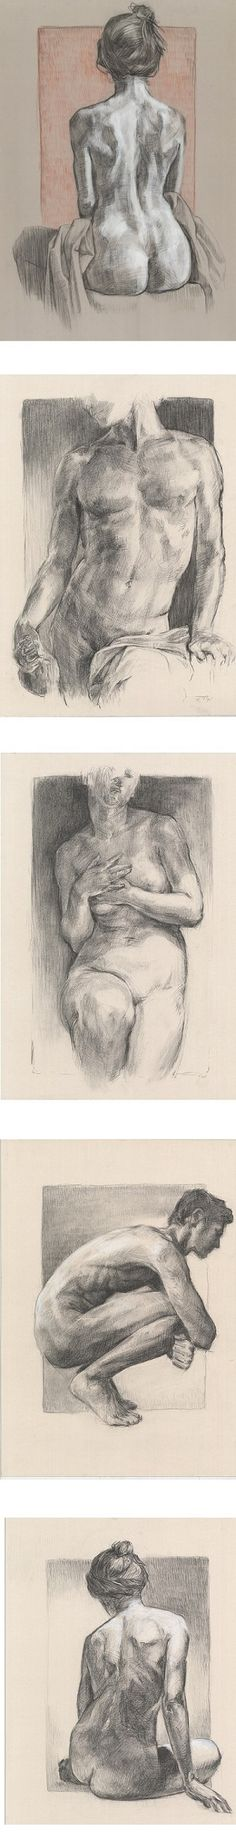 This is collection of my original charcoal male and female nude drawings. Aktzeichnung, Weibliche nude art, Posing nude. #MaleNude #FemaleNude #ClassicalNudeArt #PosingNude #ModelStudy